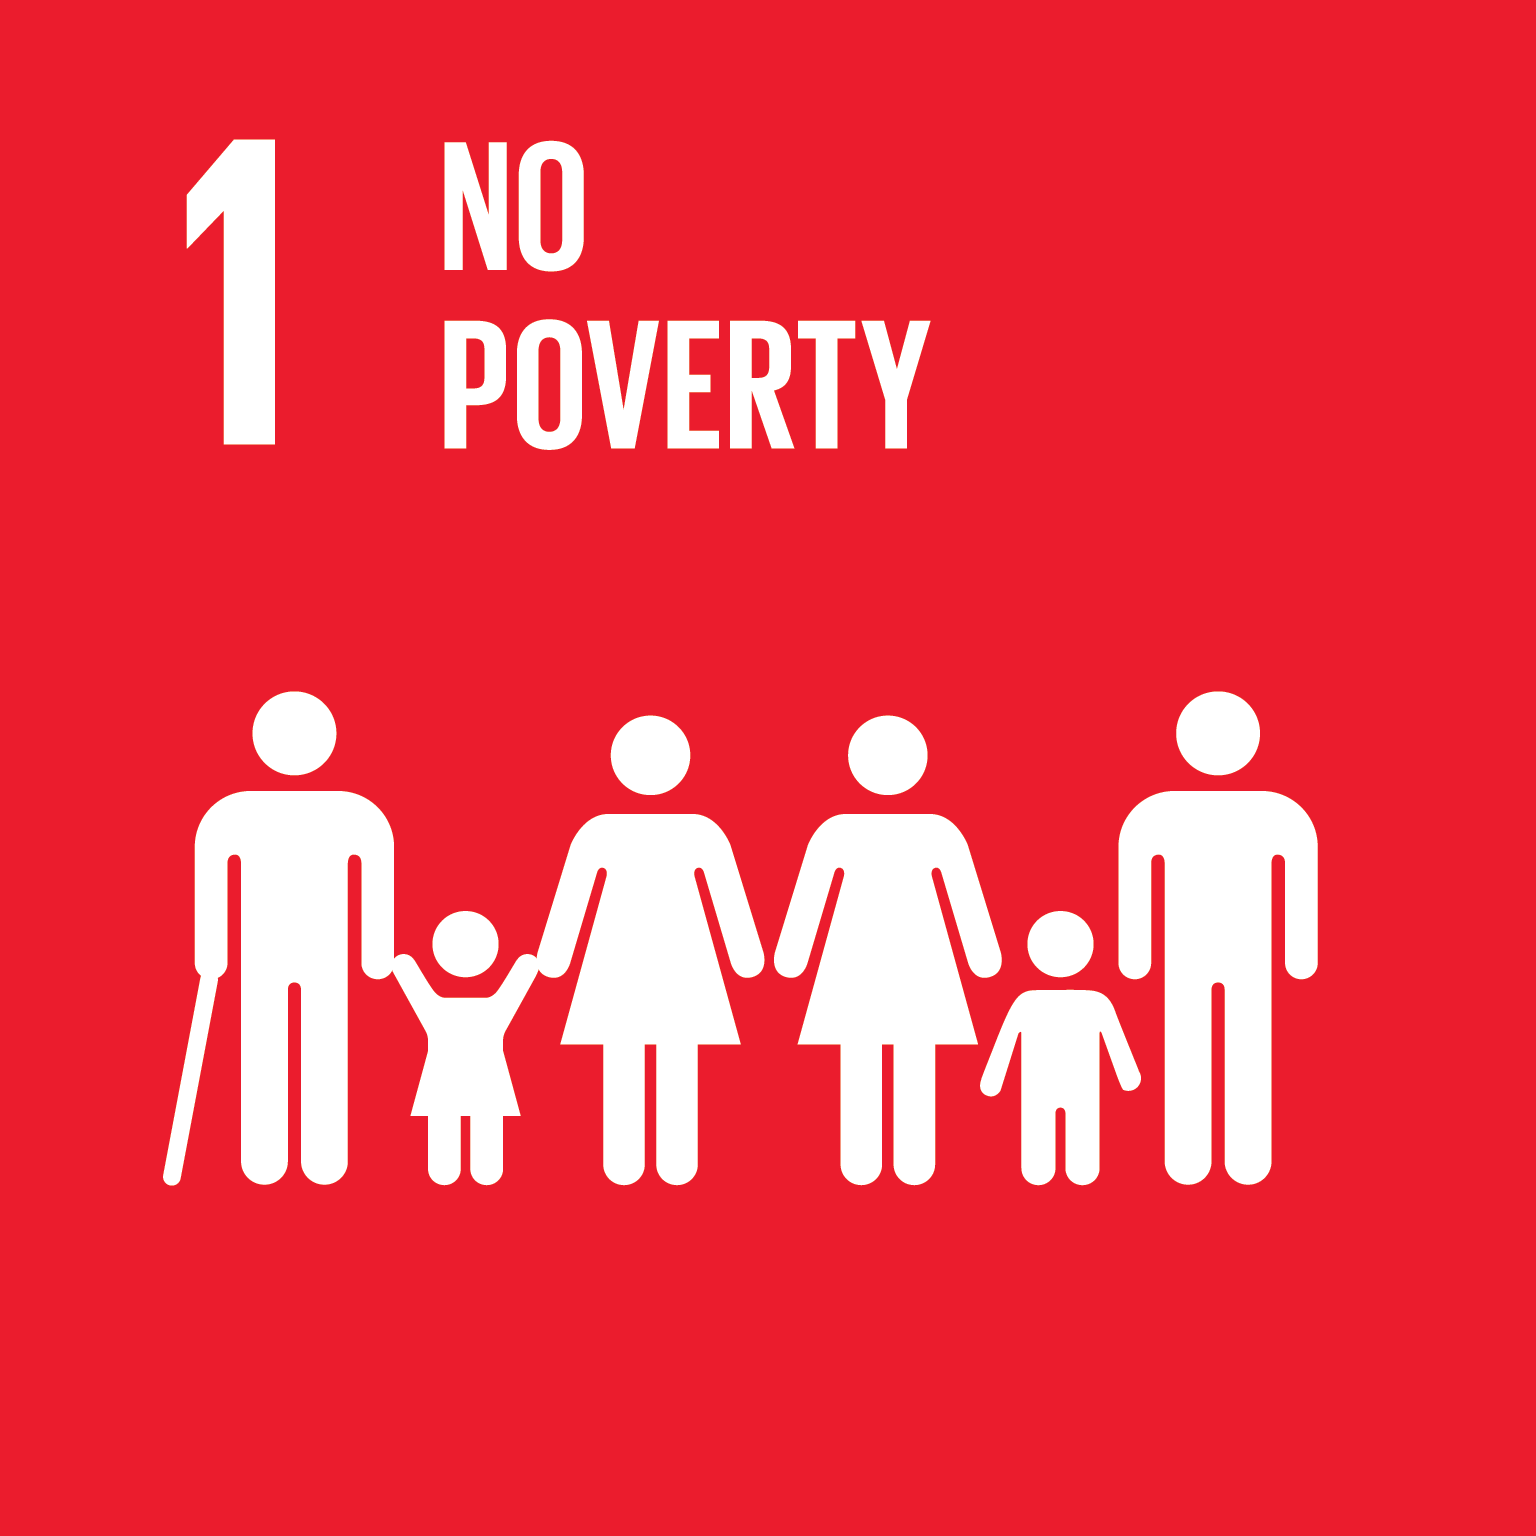 icons-no-poverty